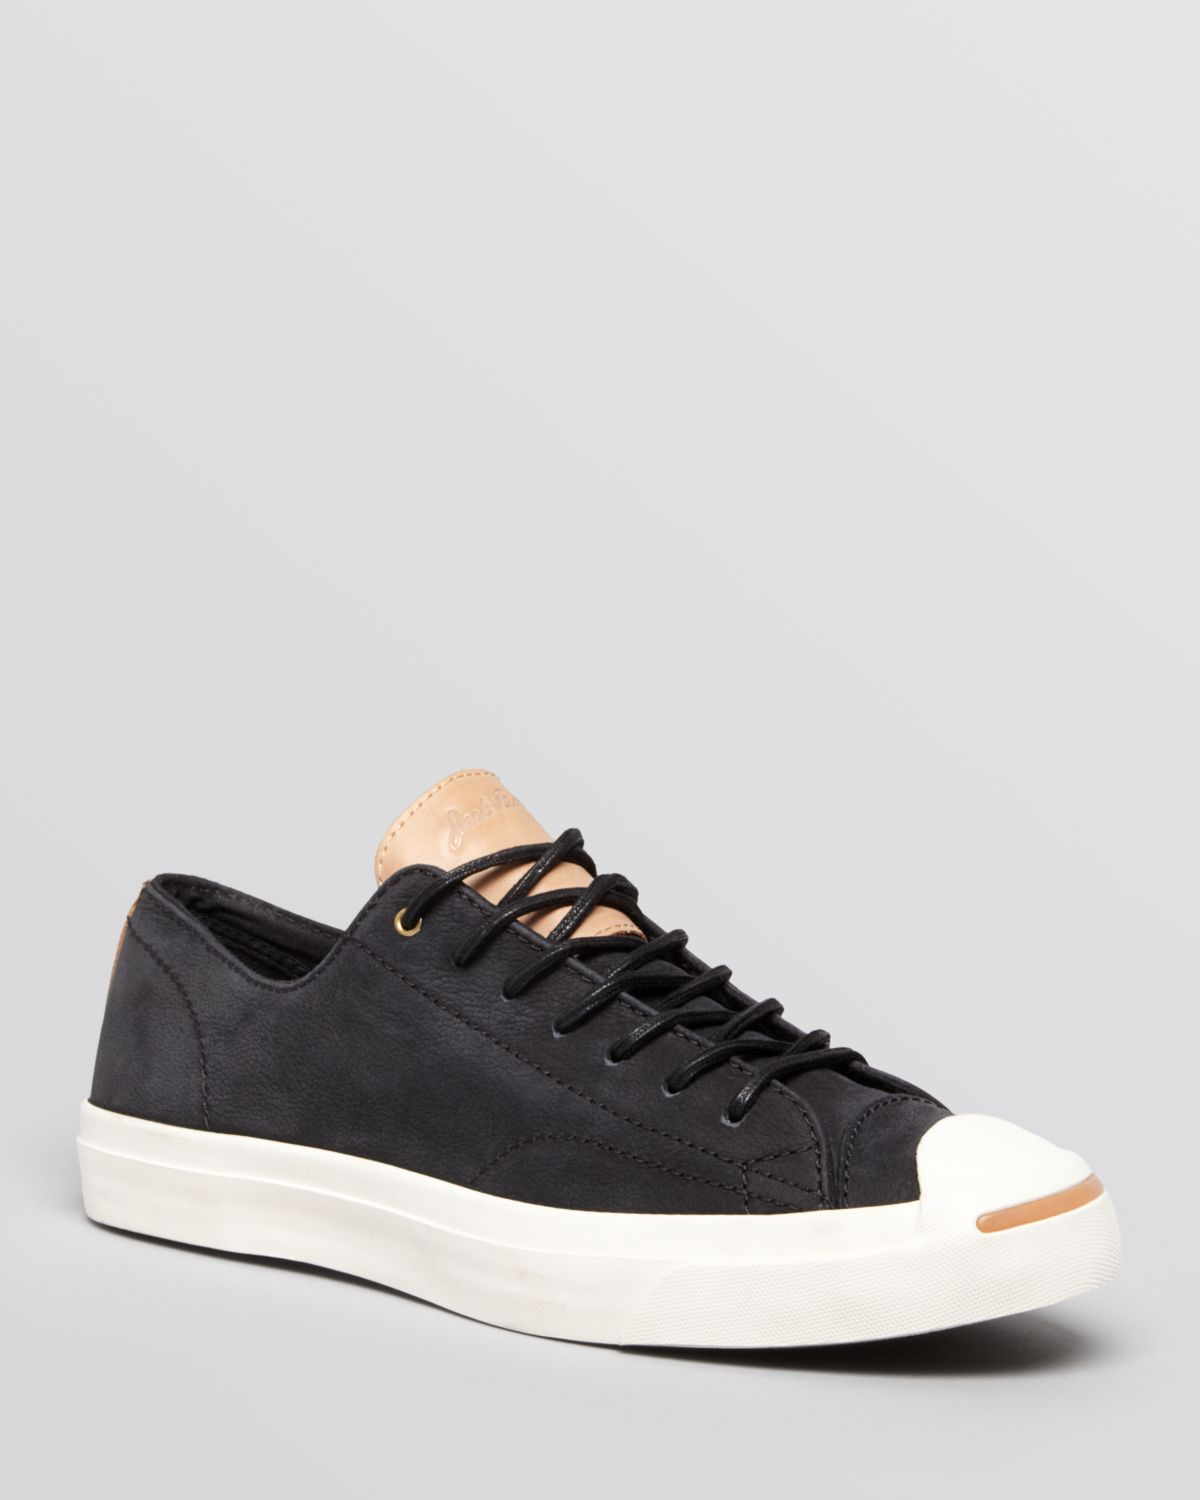 444f10b71f8c Lyst - Converse Jack Purcell Jack Split Tongue Sneakers in Black for Men